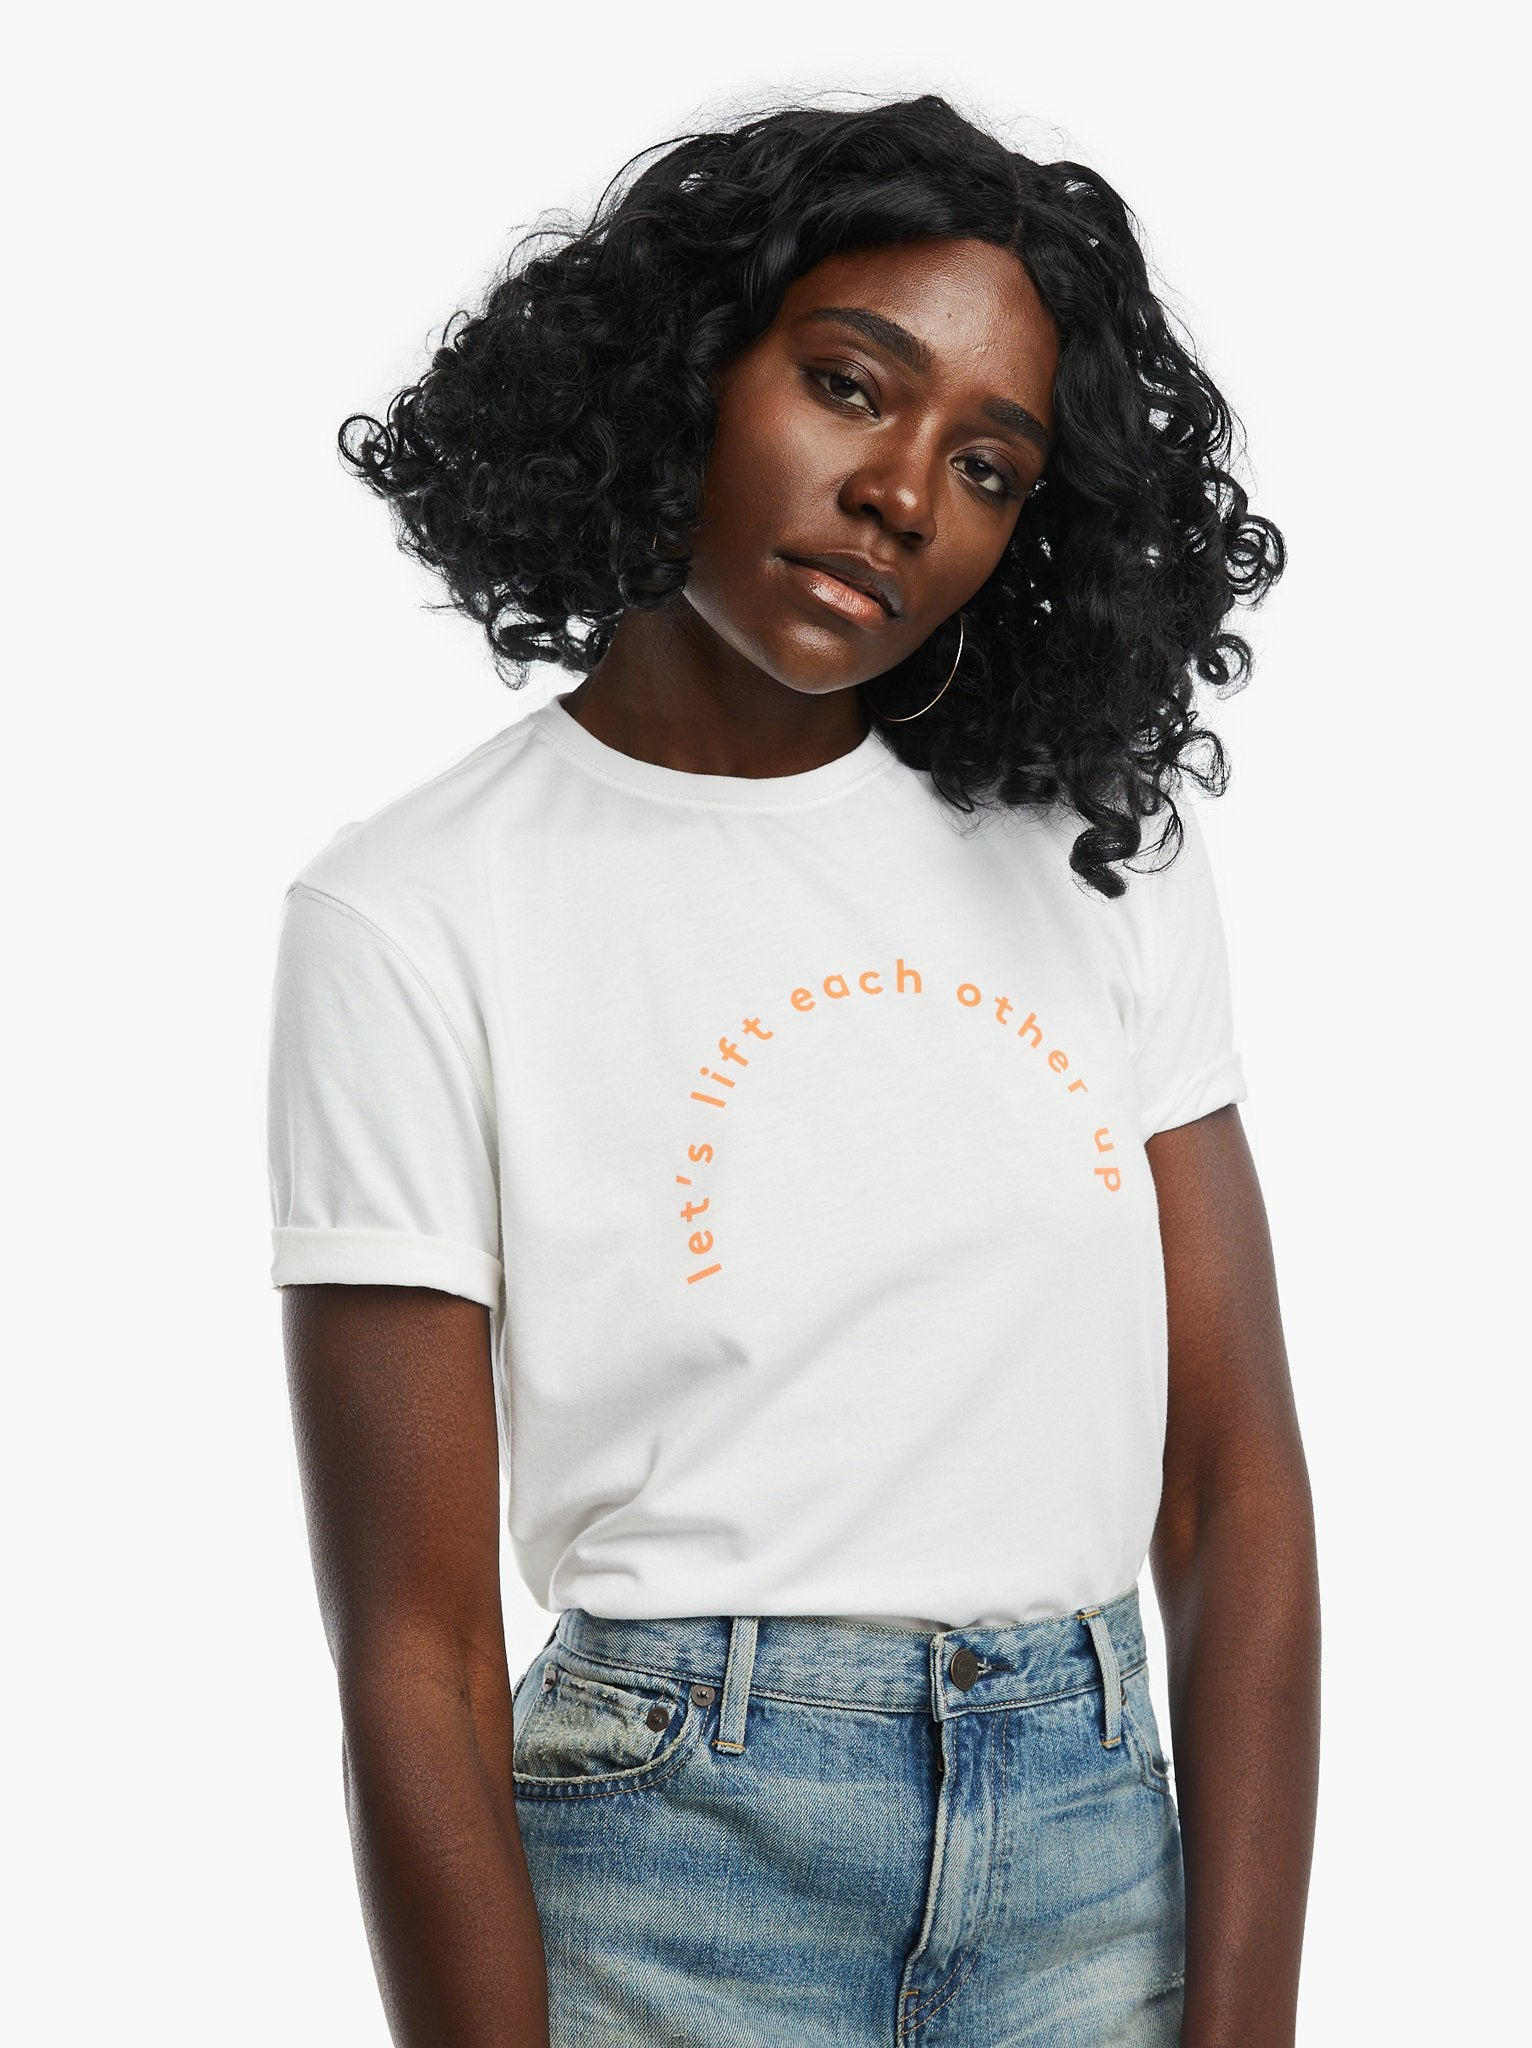 Community Collection T-Shirt: Empowered